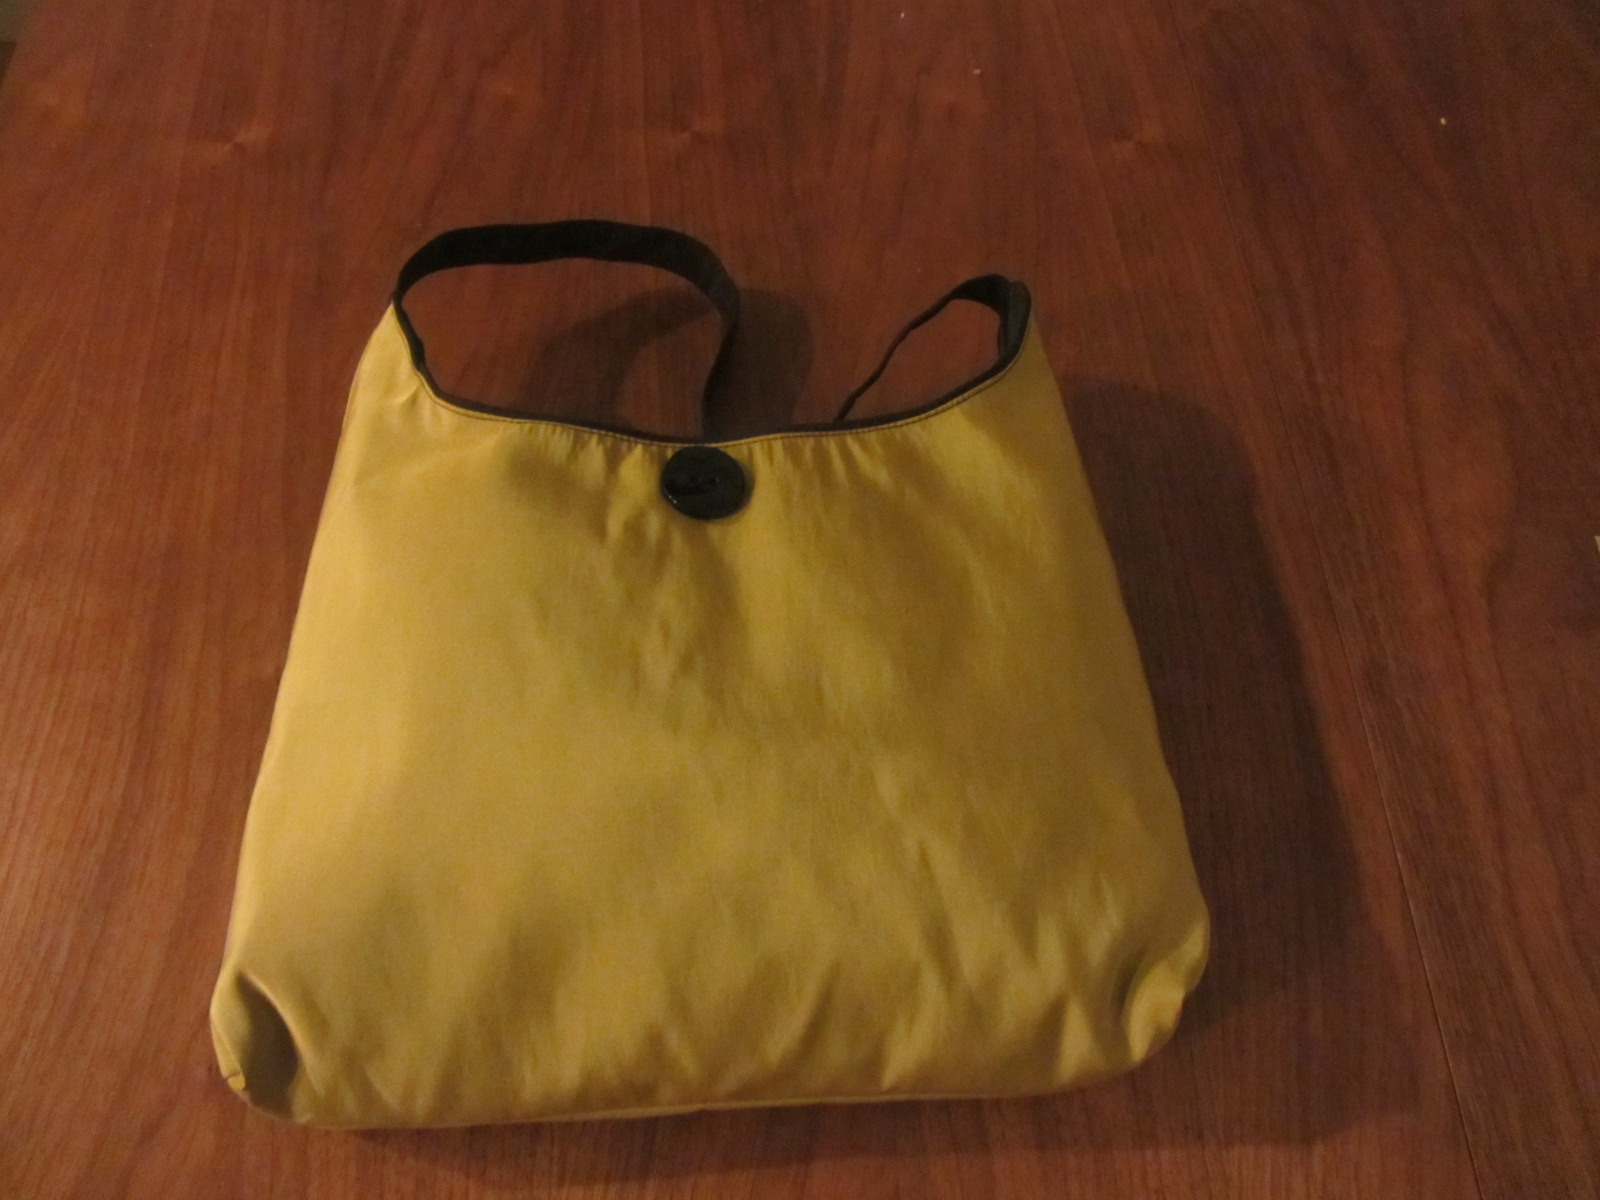 raincoat folded